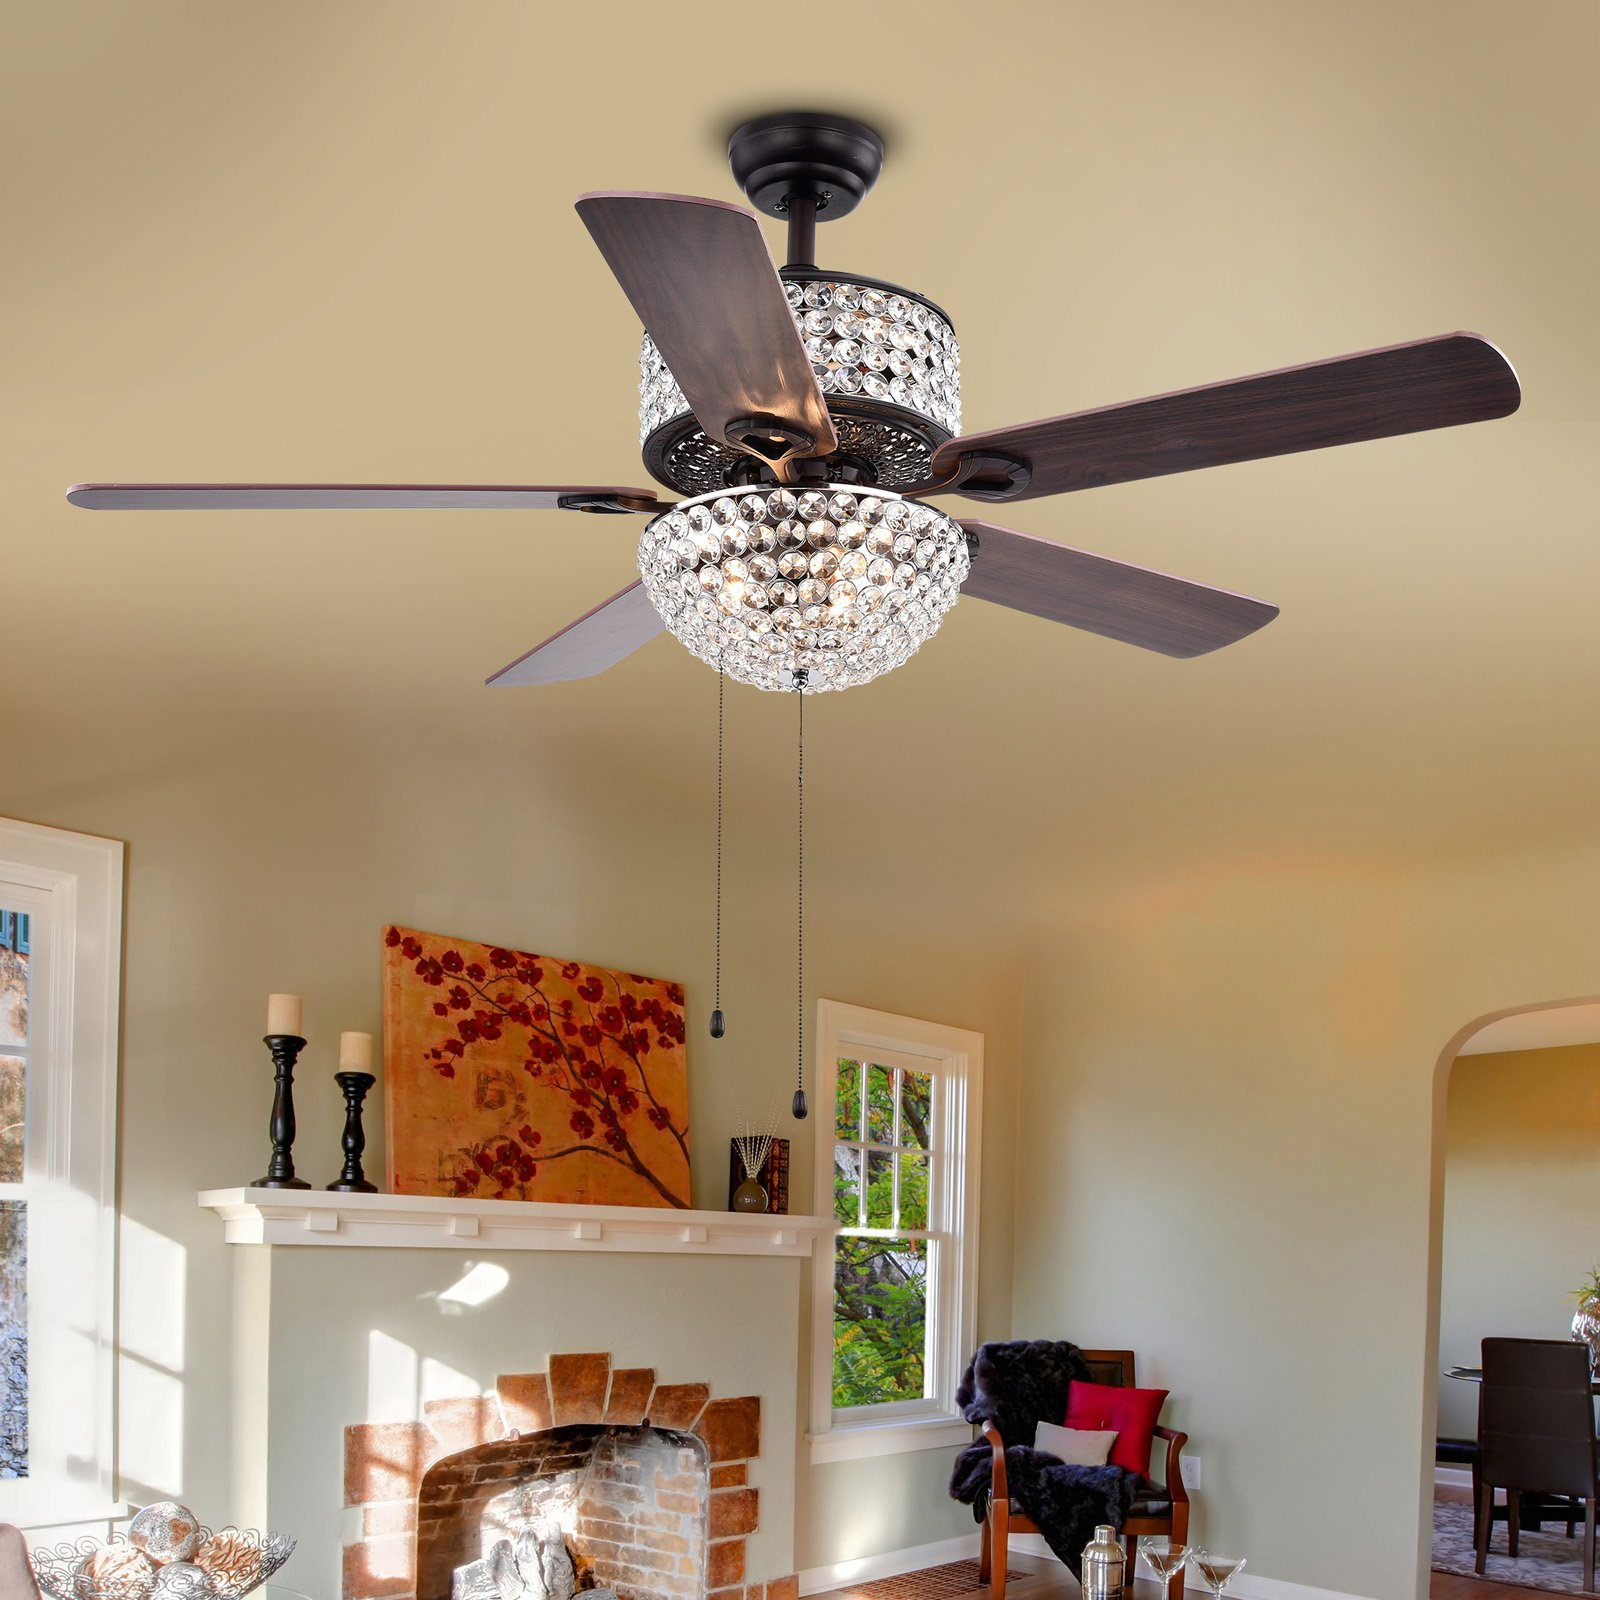 Laure Crystal 6 Light Crystal 5 Blade 52 Inch Ceiling Fan